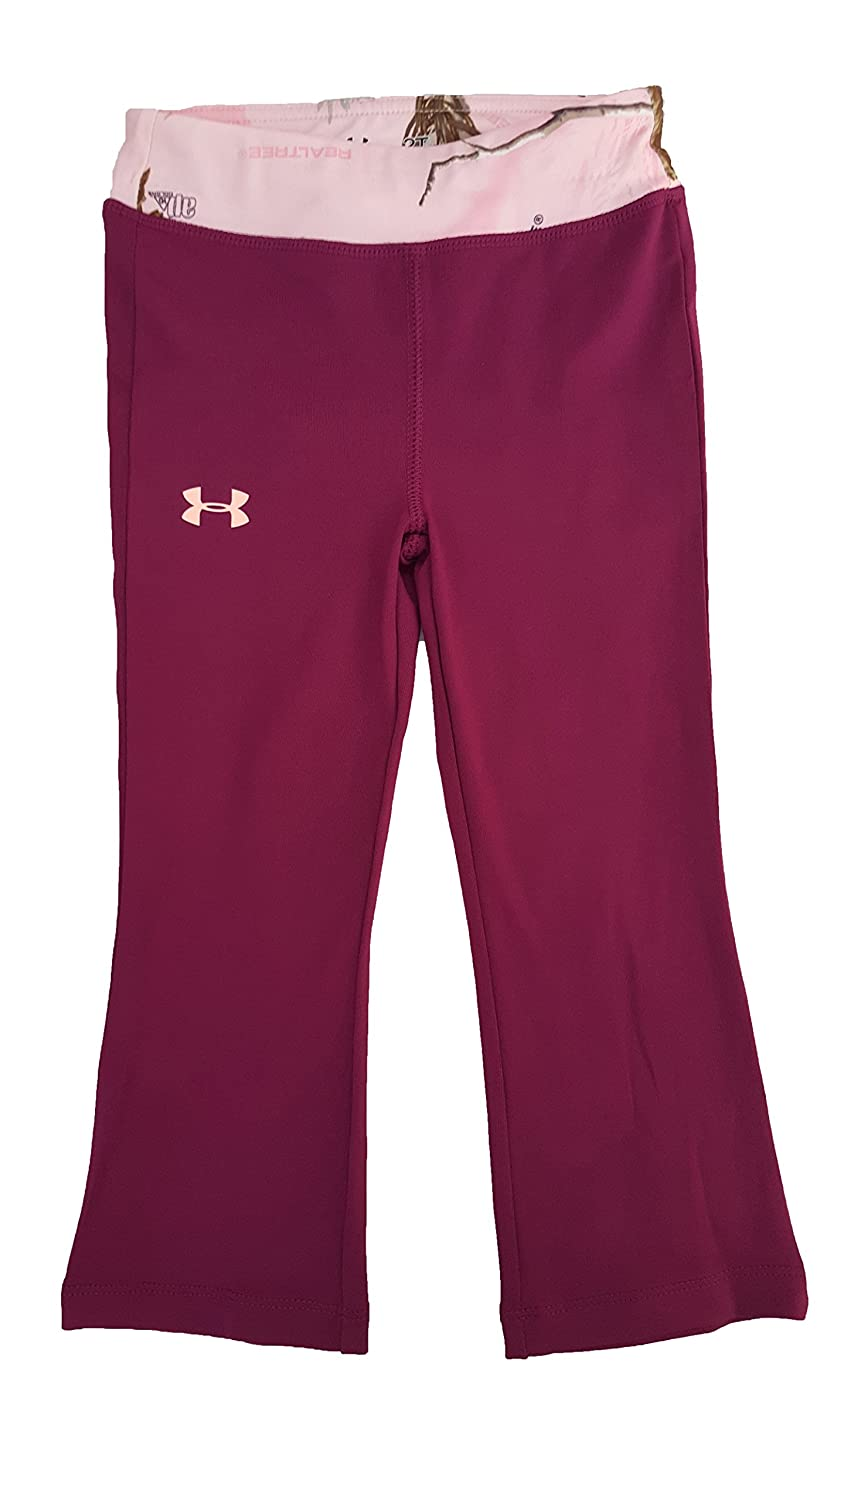 Under Armour Girl`s Realtree Camo Sweatpants